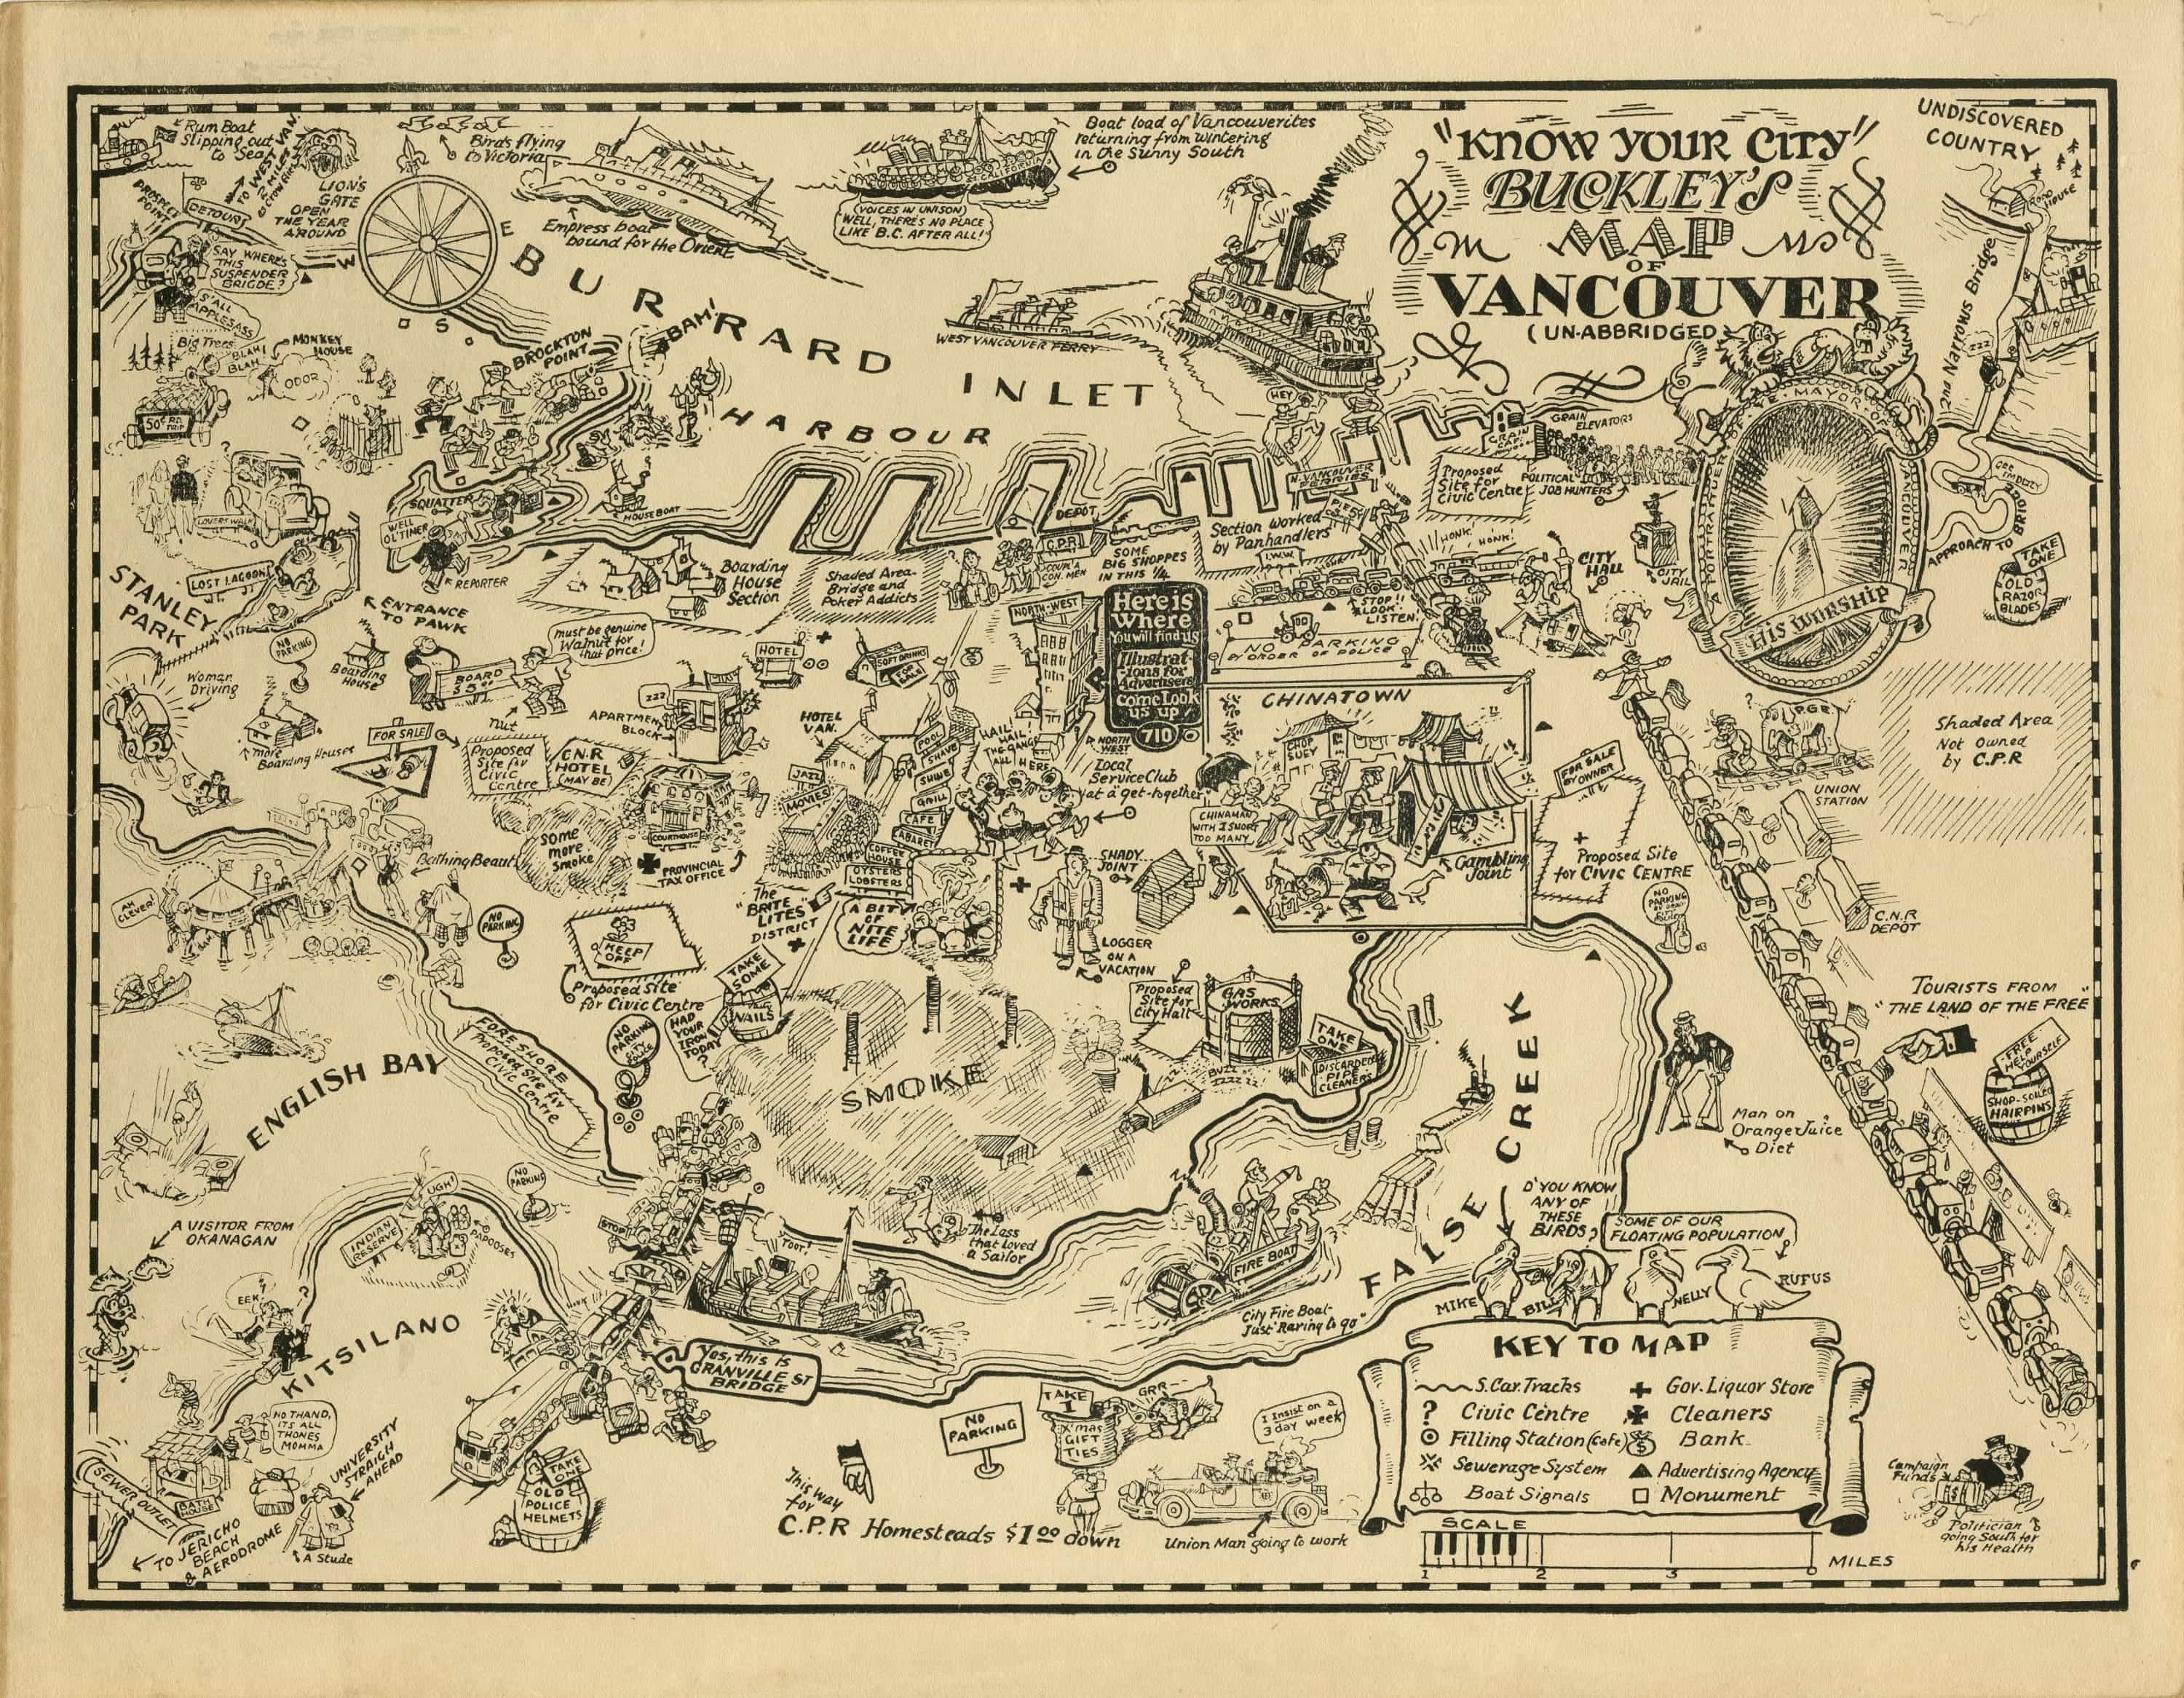 Nearly Century Old Map Of Vancouver Paints A Comical Portrait Of